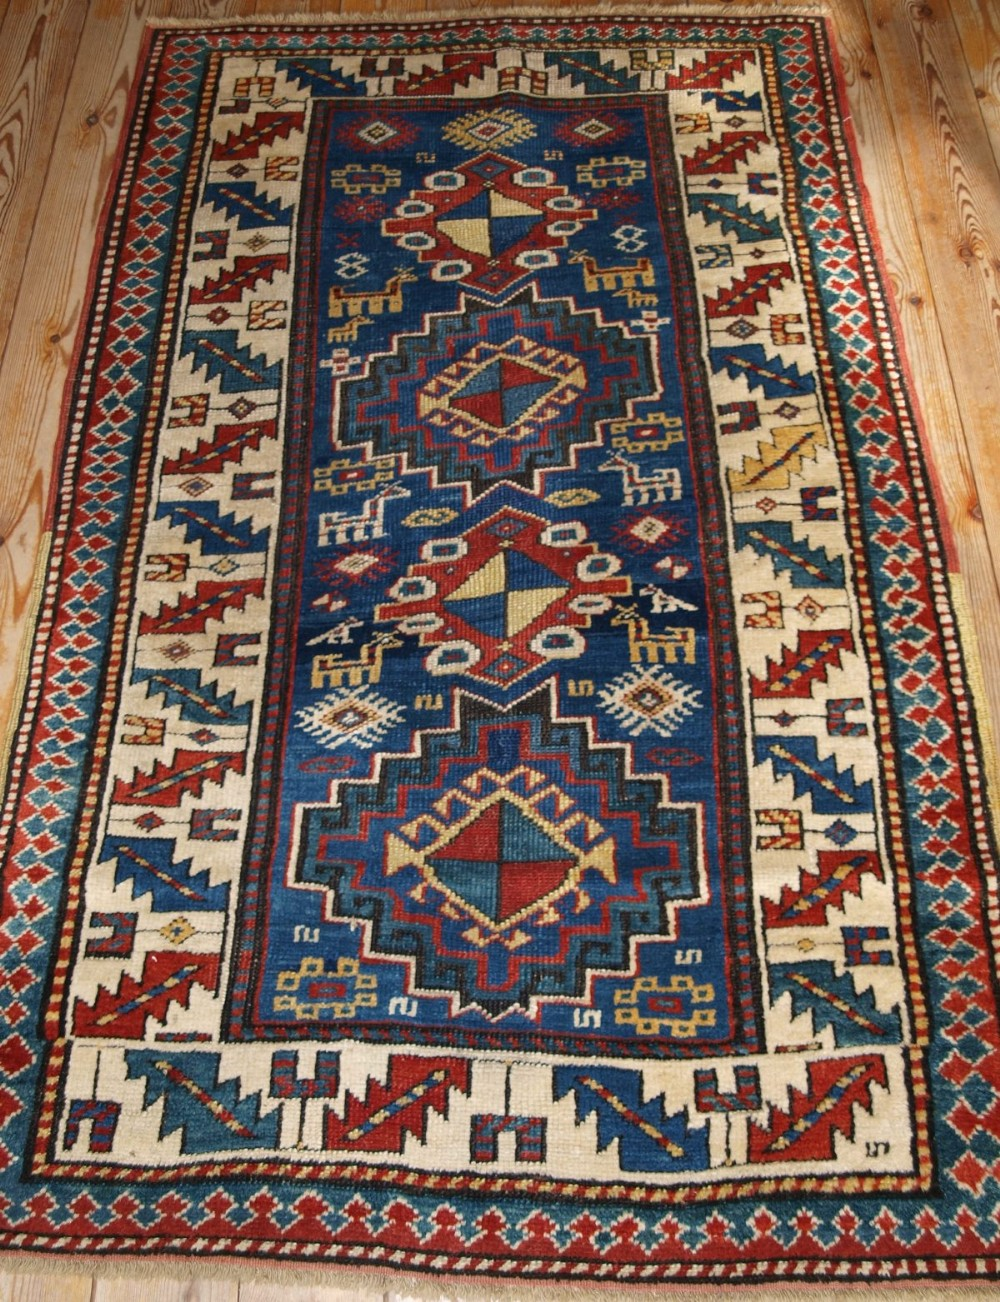 antique caucasian kazak rug bold design with animals late 19th cent